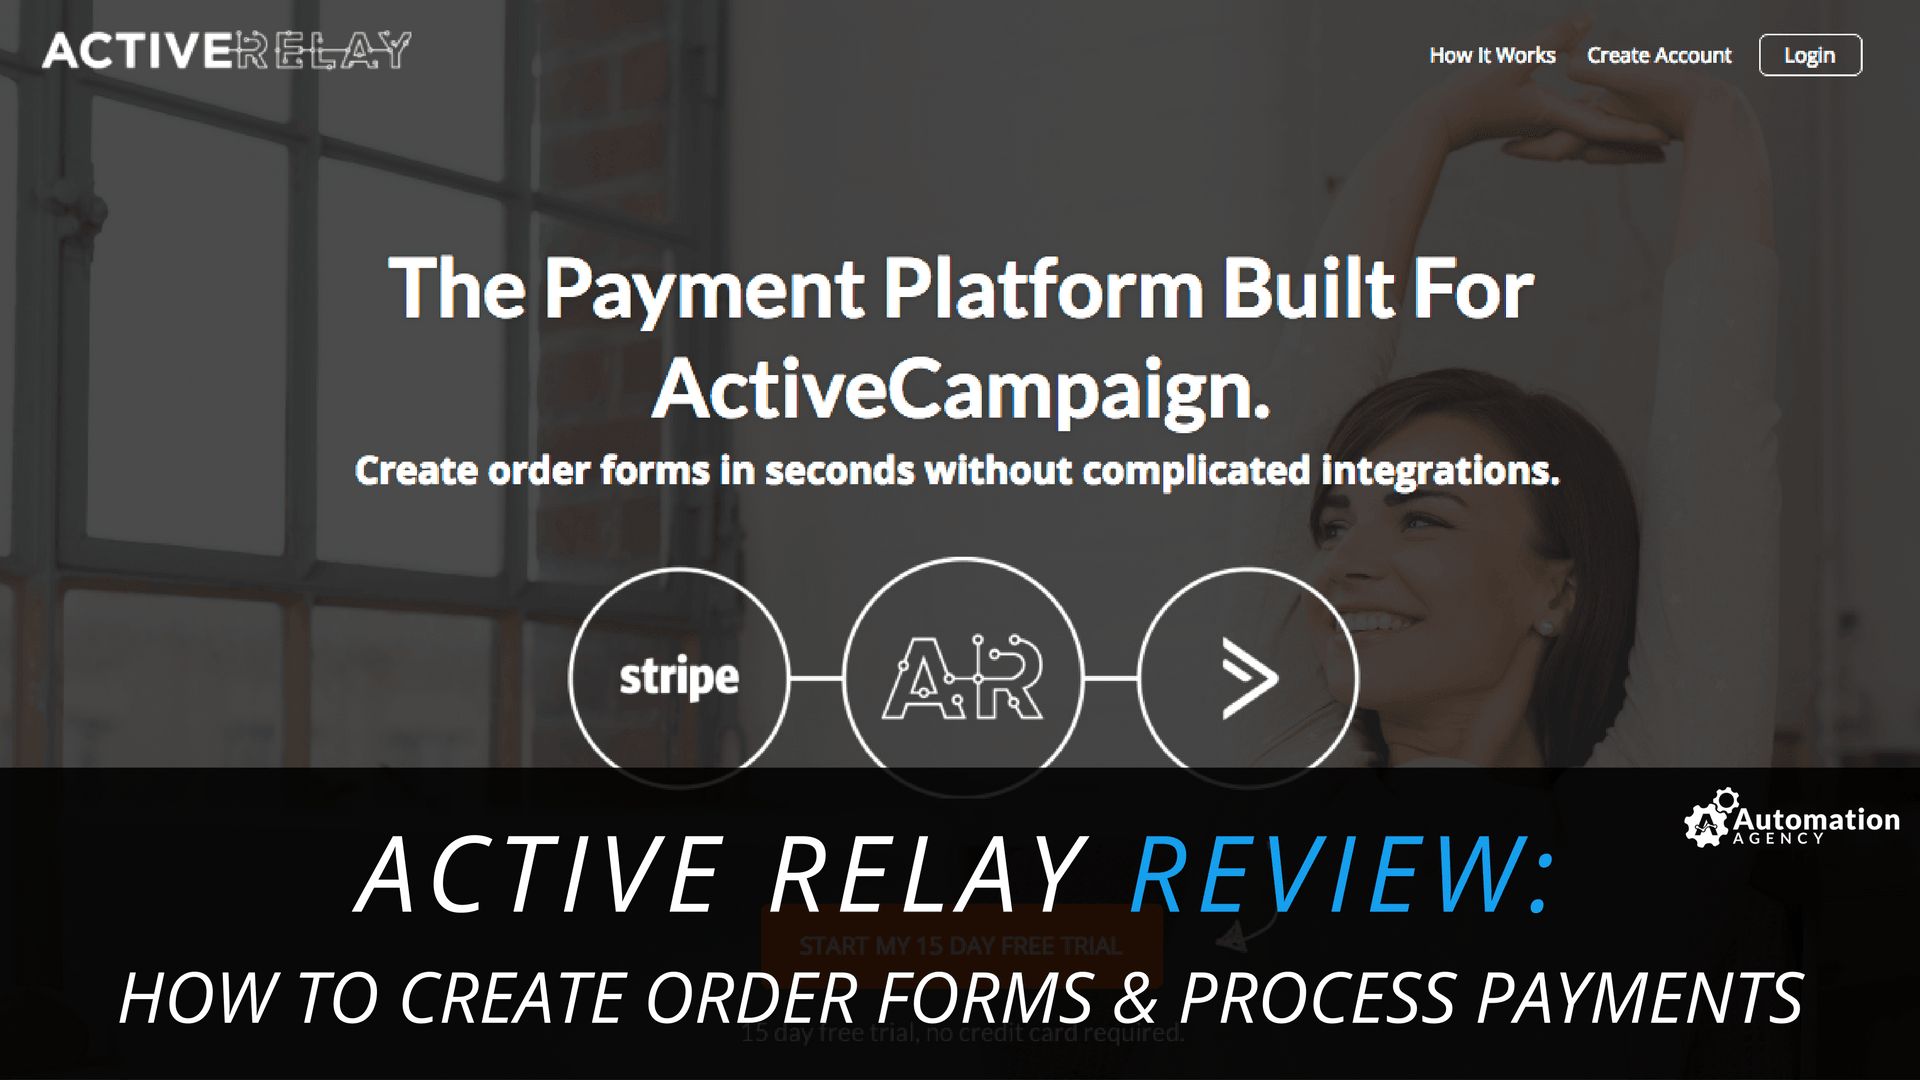 active relay review